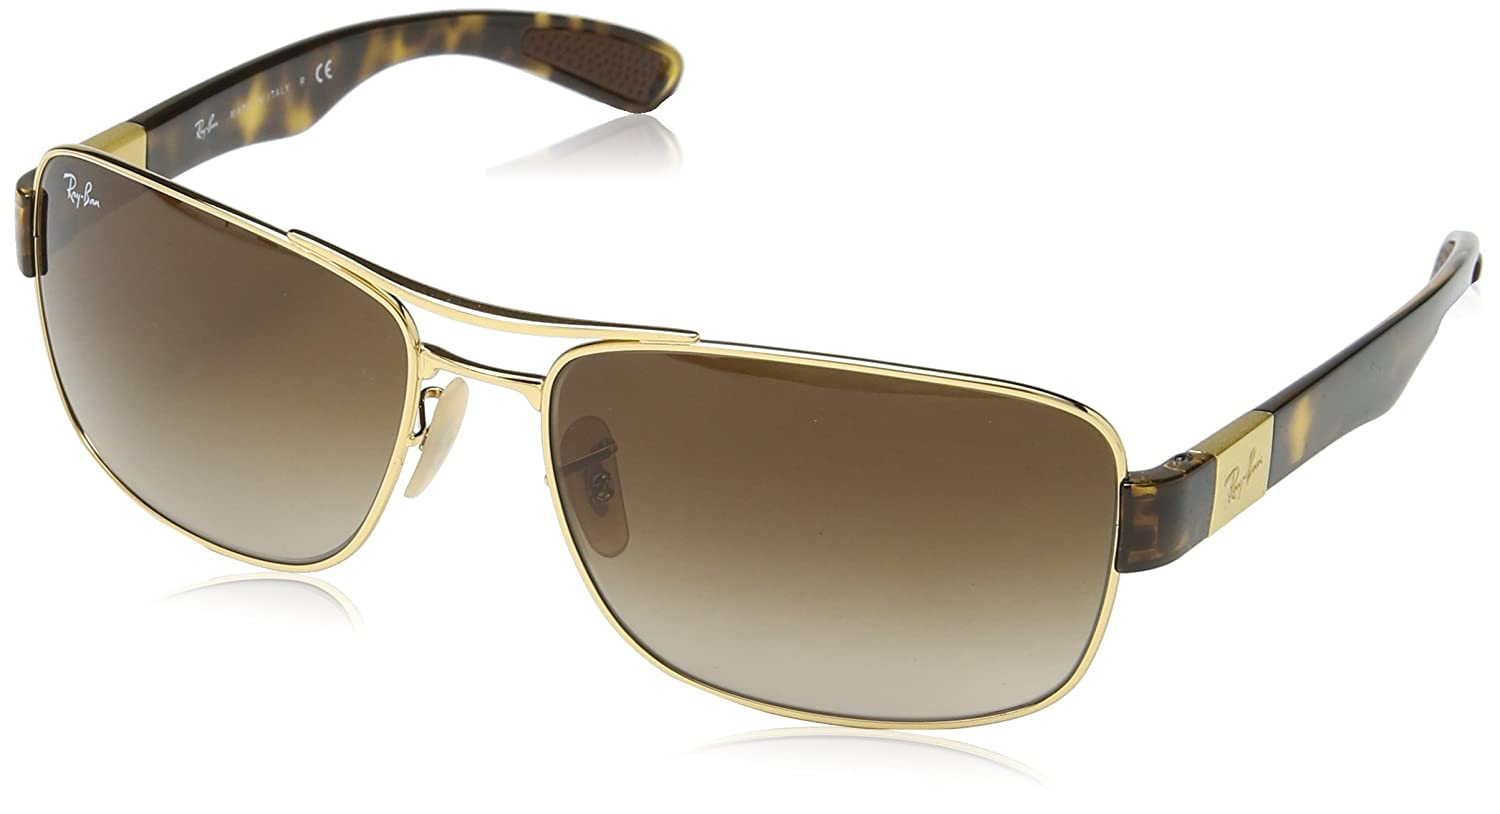 048ee8b0da Amazon.com  Ray-Ban RB 3522 Sunglasses  Clothing